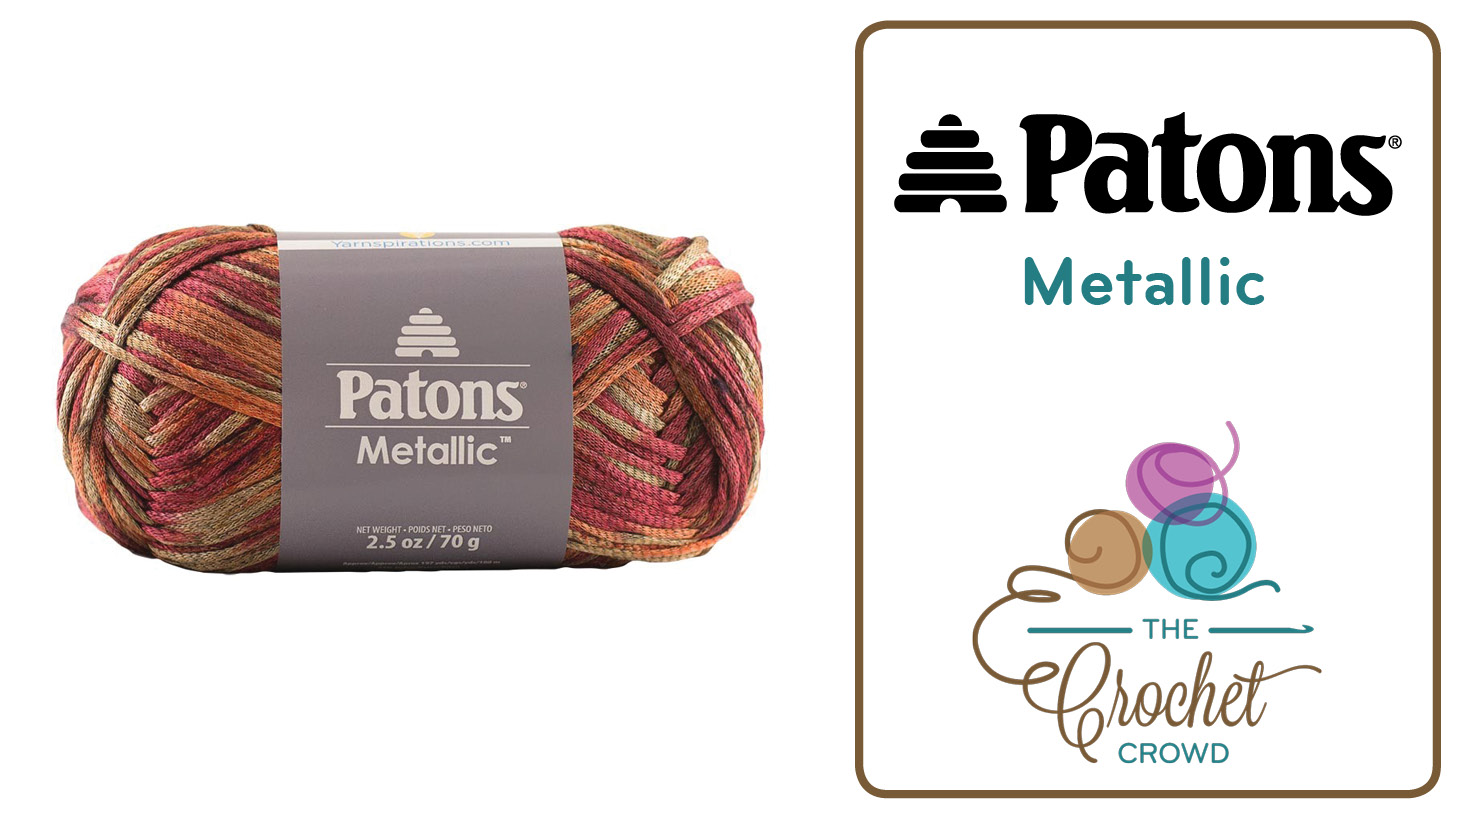 What To Do With Patons Metallic Yarn - The Crochet Crowd®